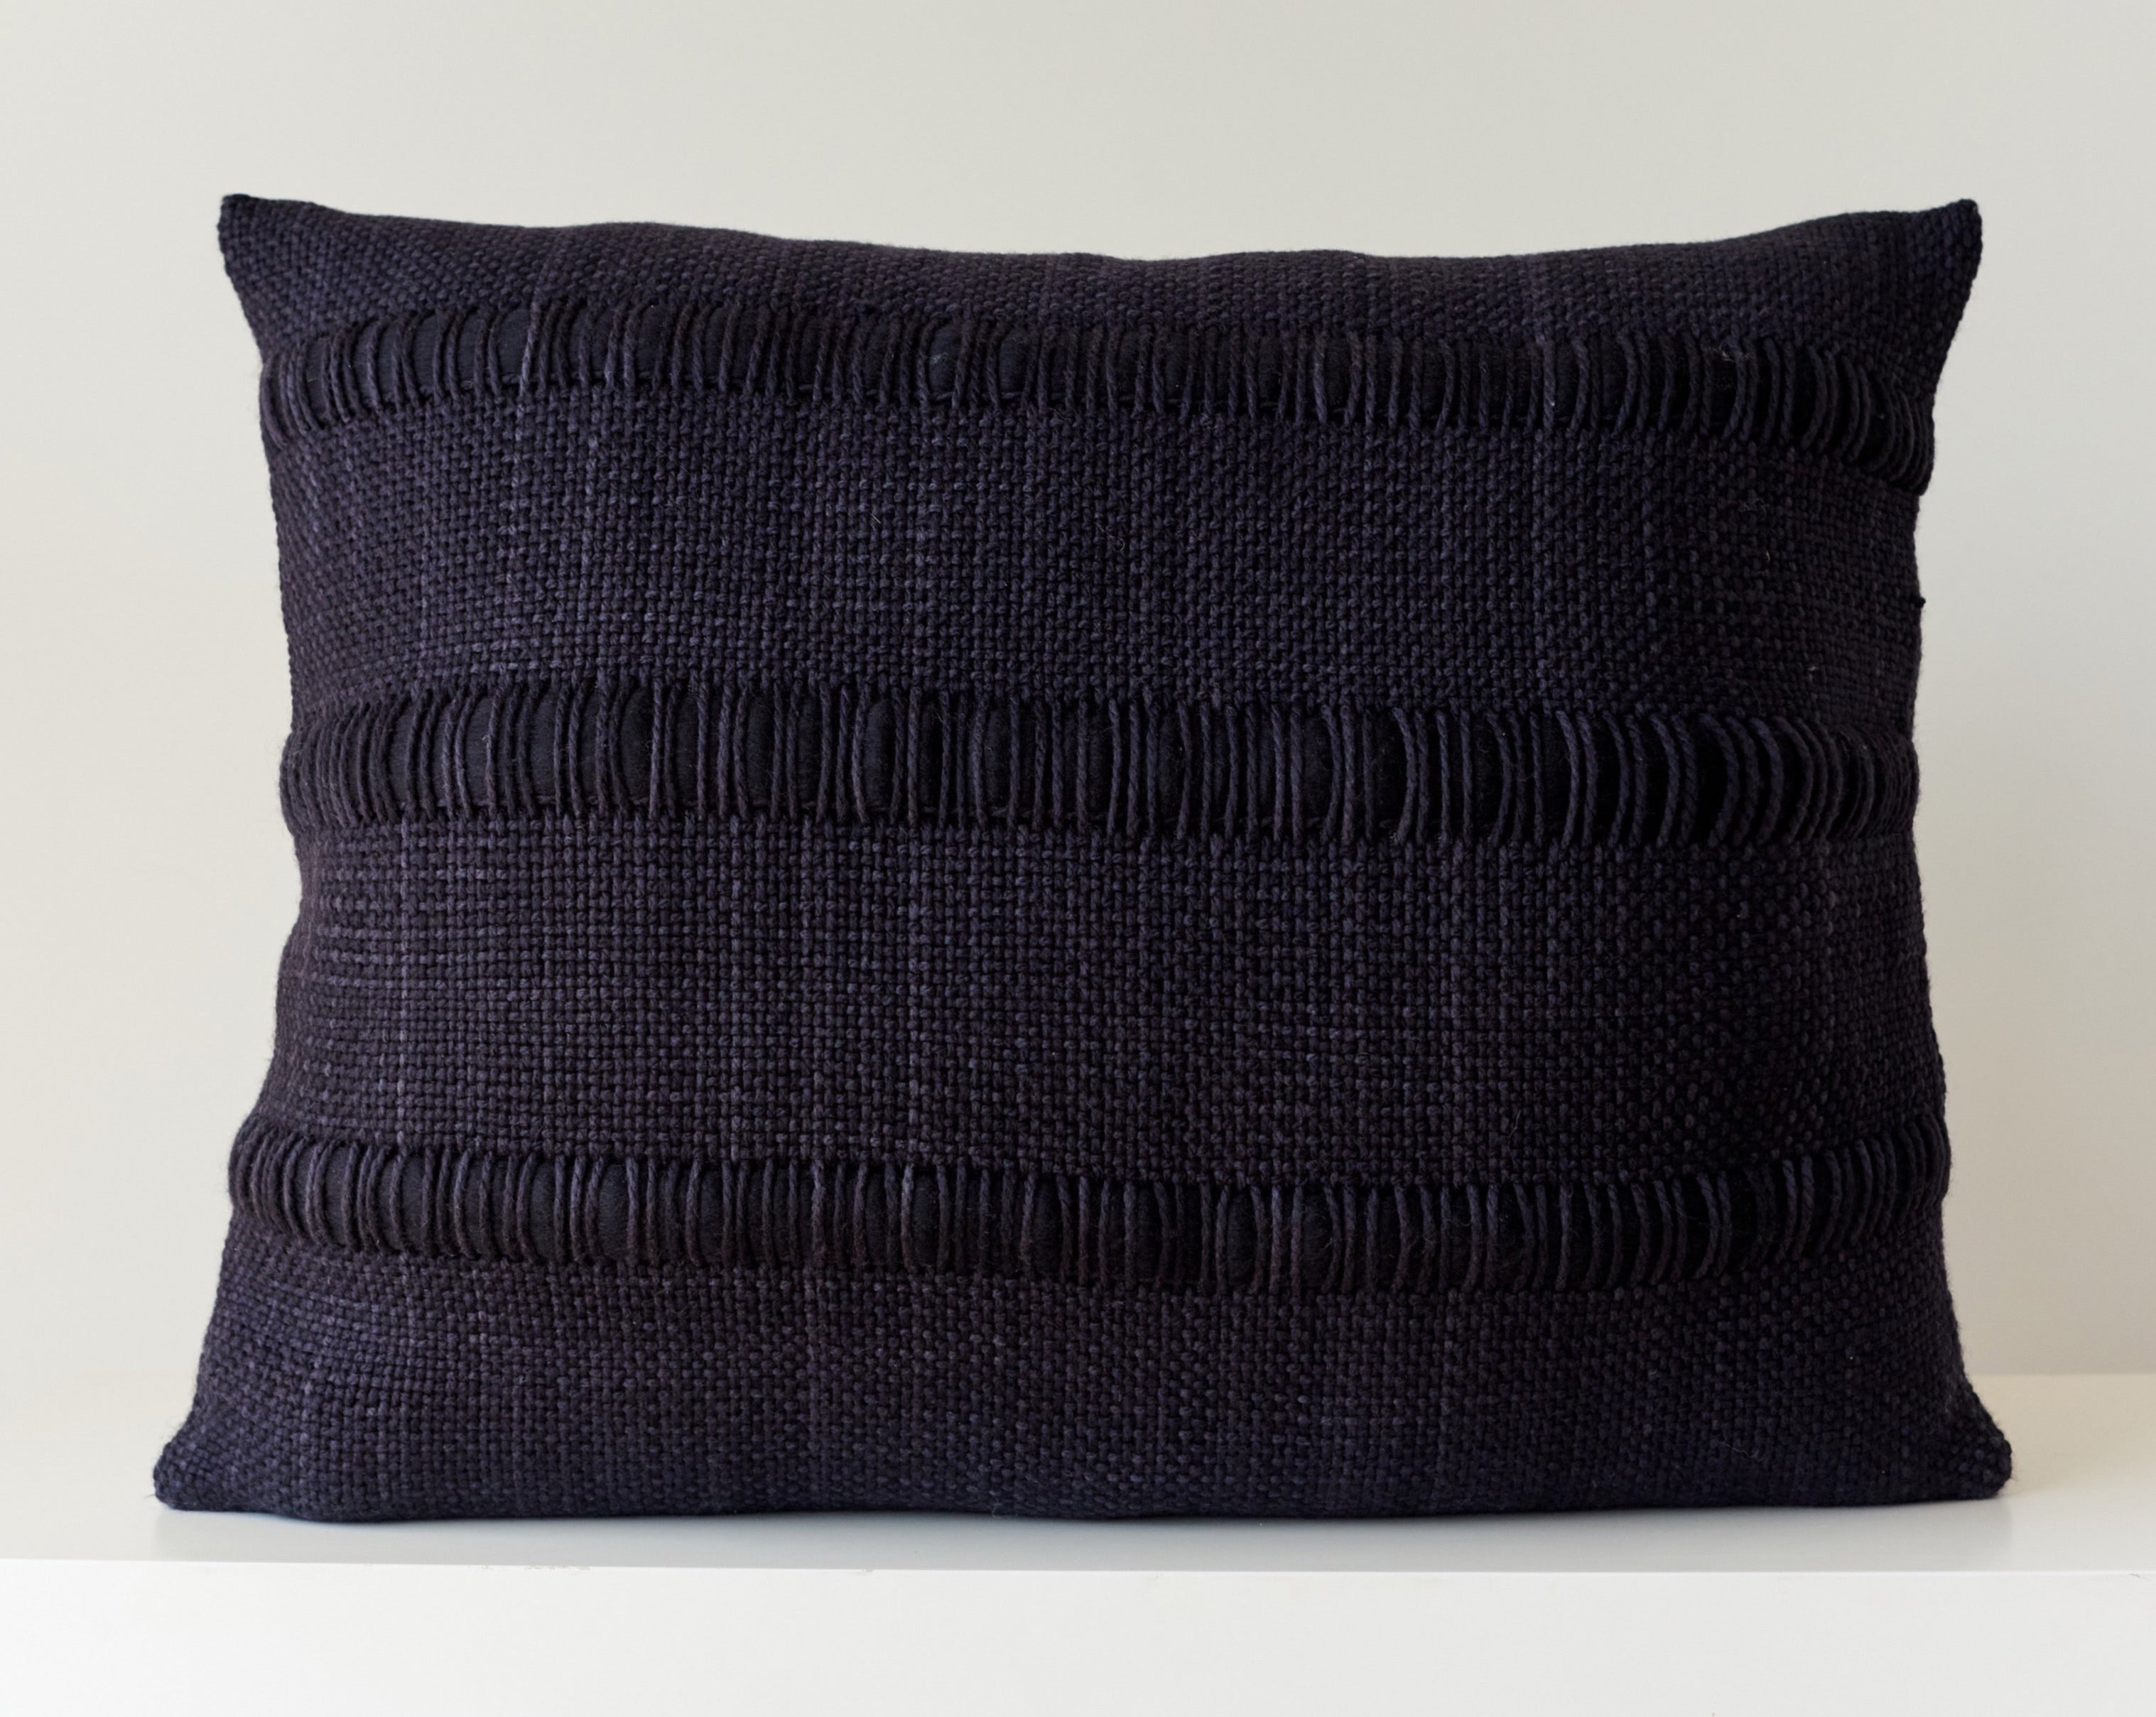 APOLO Pillow Black